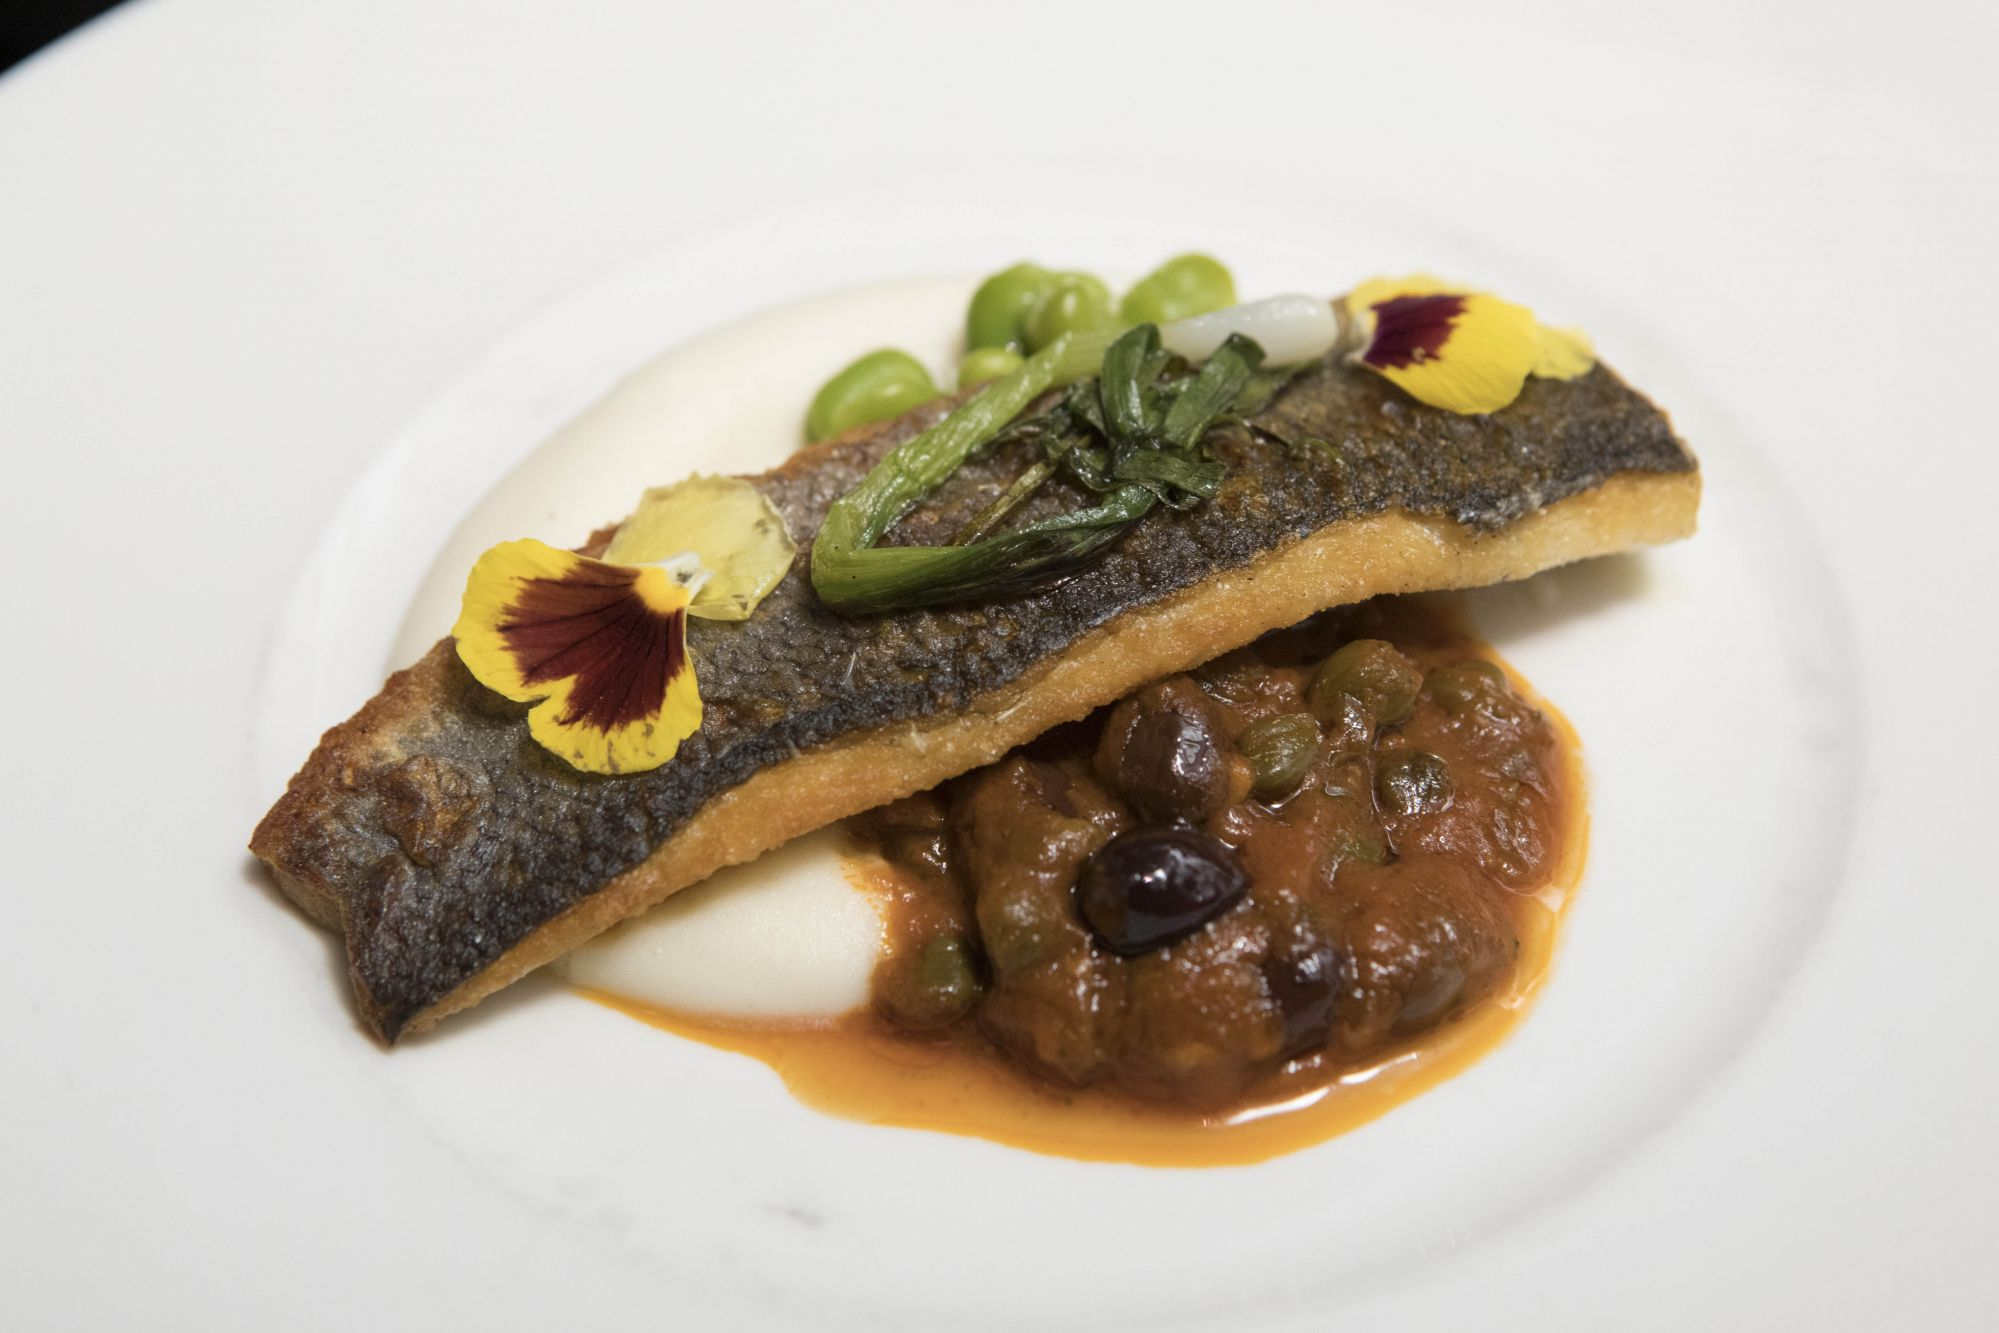 Pan-seared sea bass Mediterranean-style with broad beans and grilled spring onions